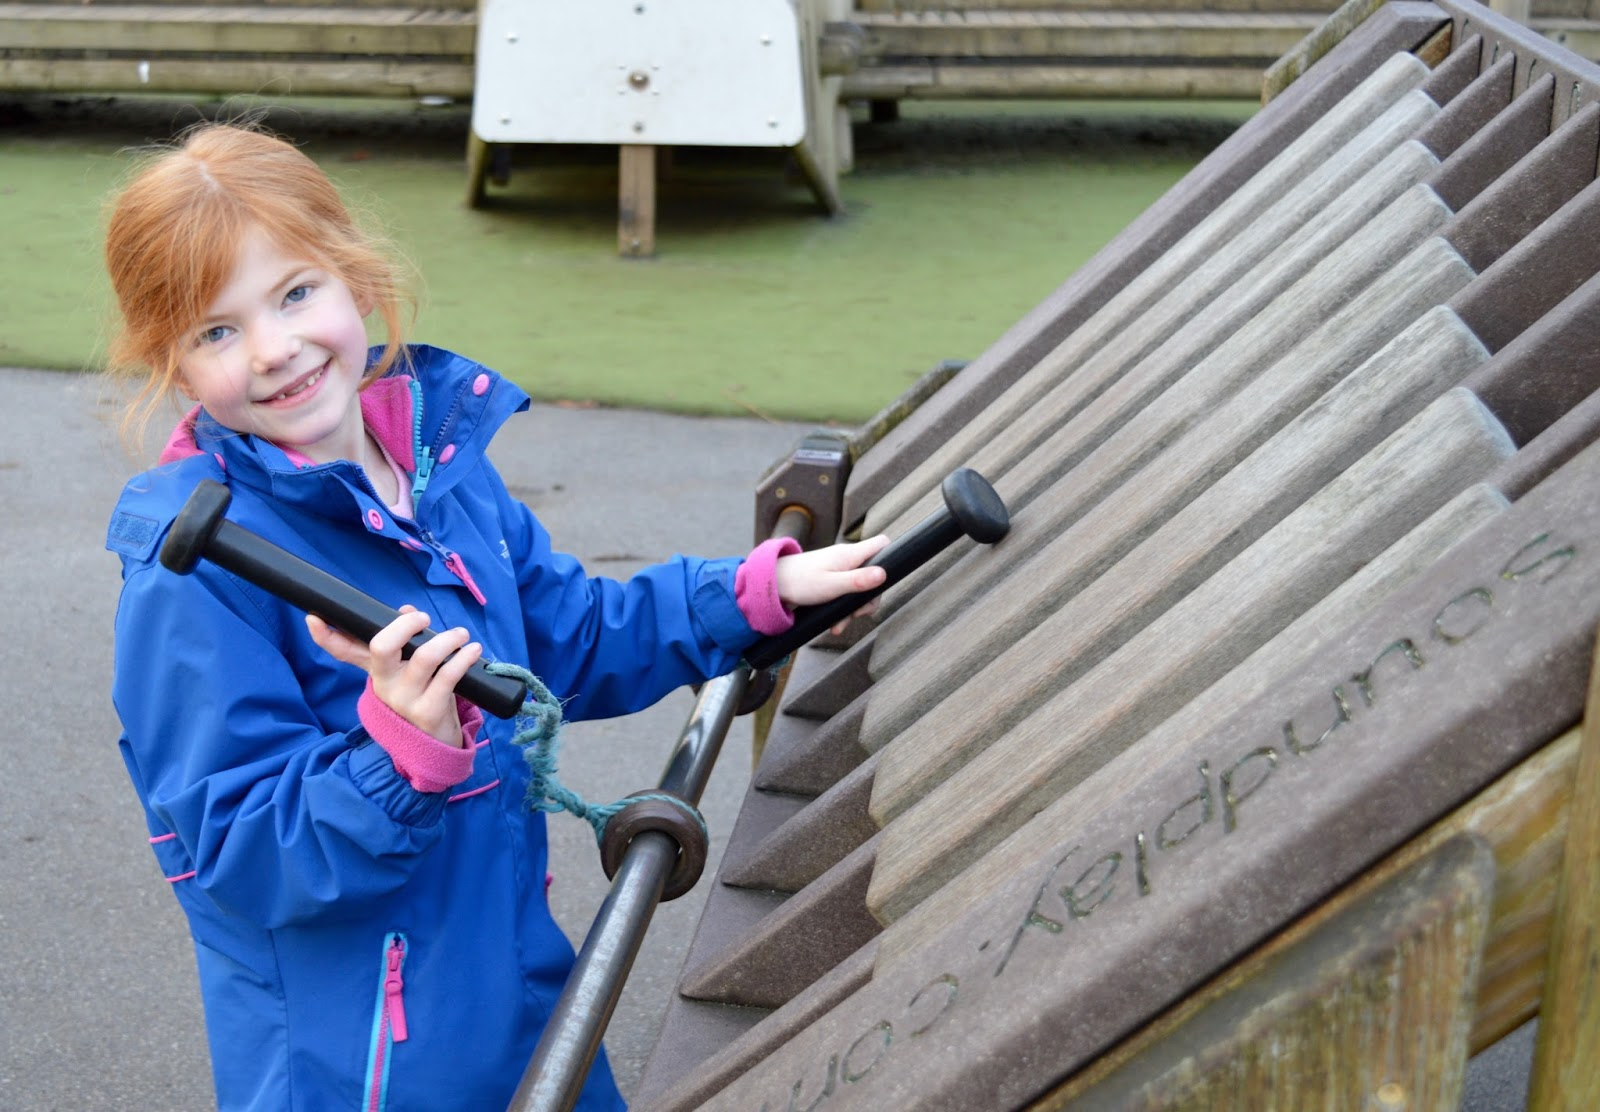 6 Day Trips to take with your Kids this Summer (that are less than 2 hours drive from Newcastle) | Harrogate Day Trip (Valley Gardens Park)